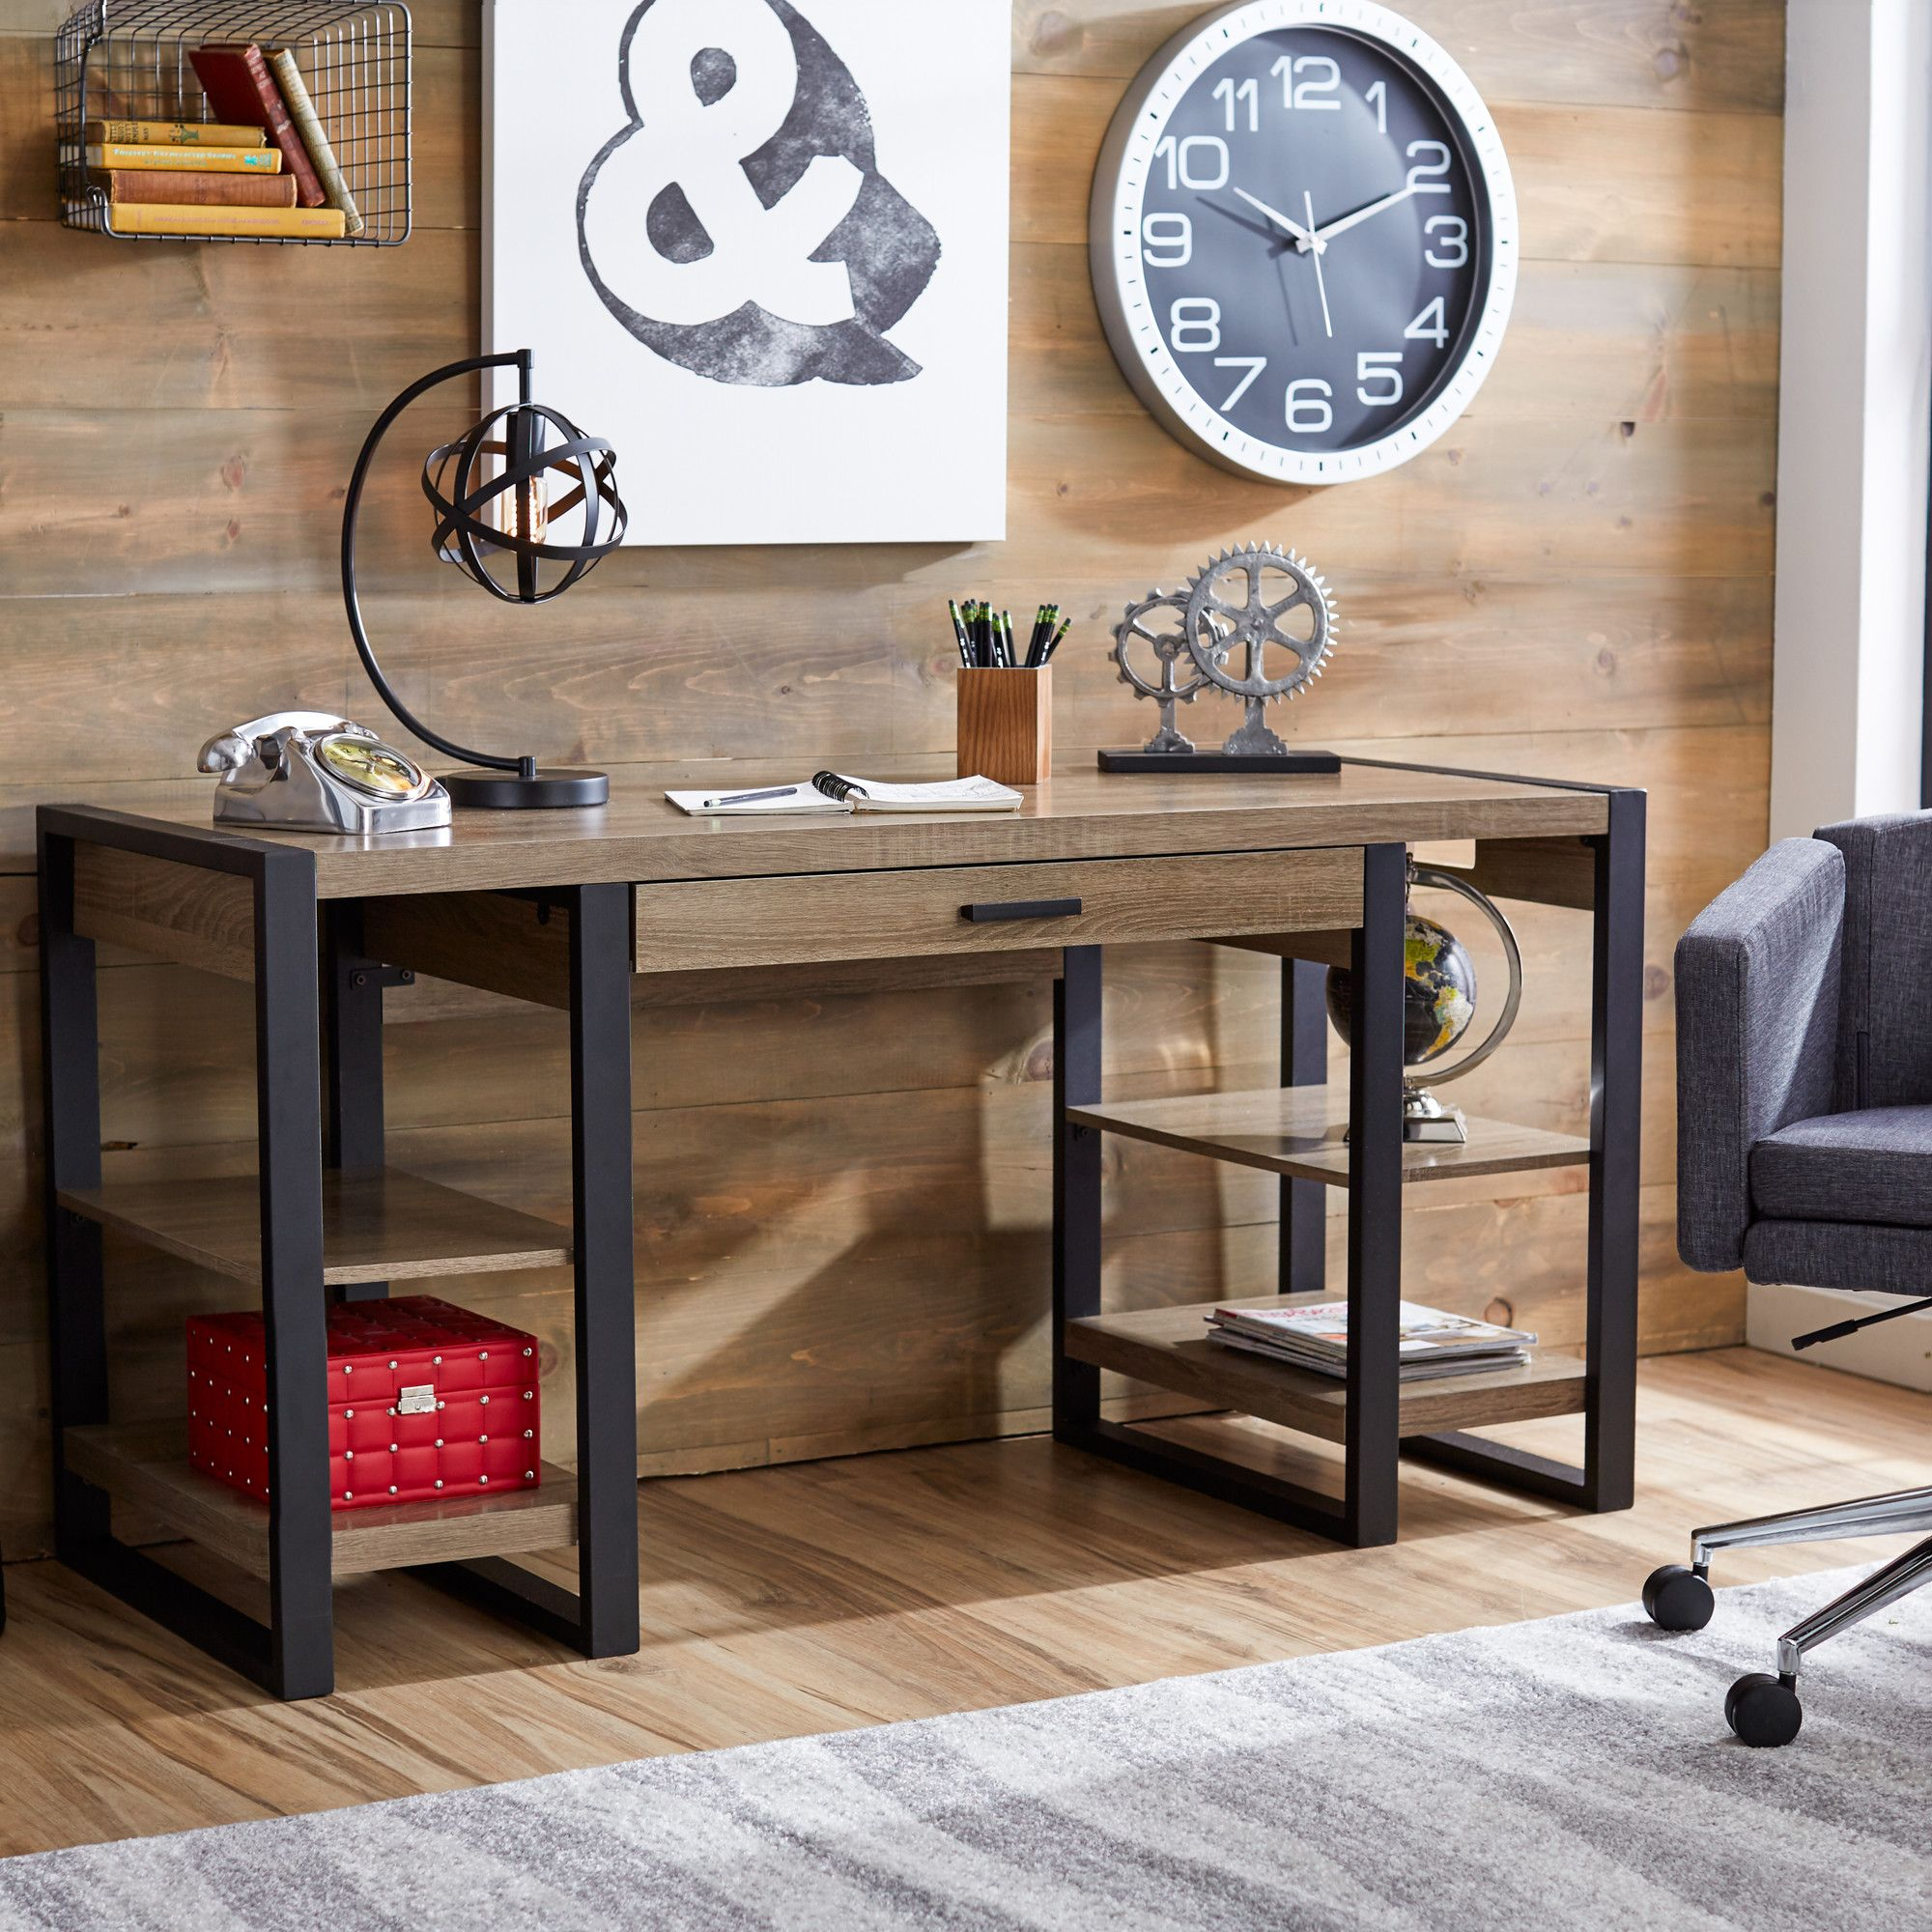 Shop Wayfair For All Desks To Match Every Style And Budget